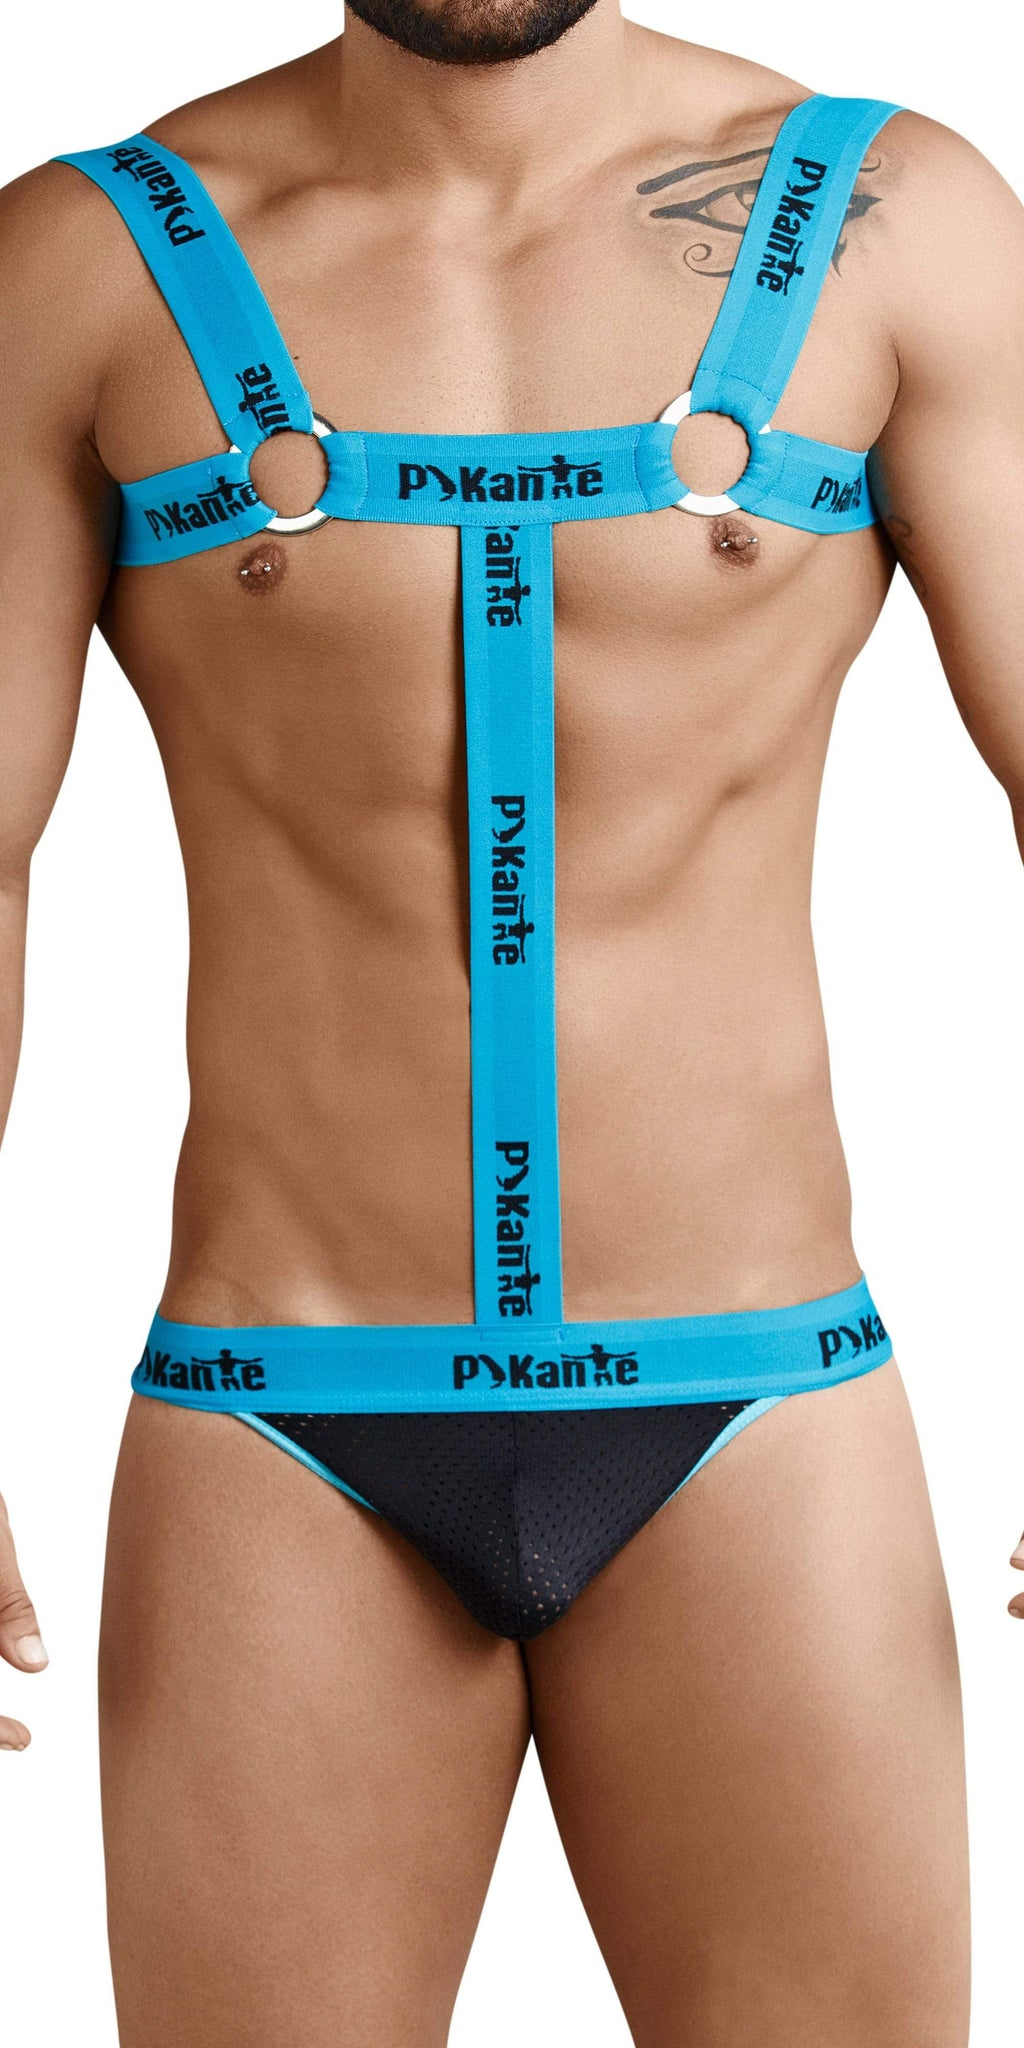 Pikante Attraction Harness In Blue